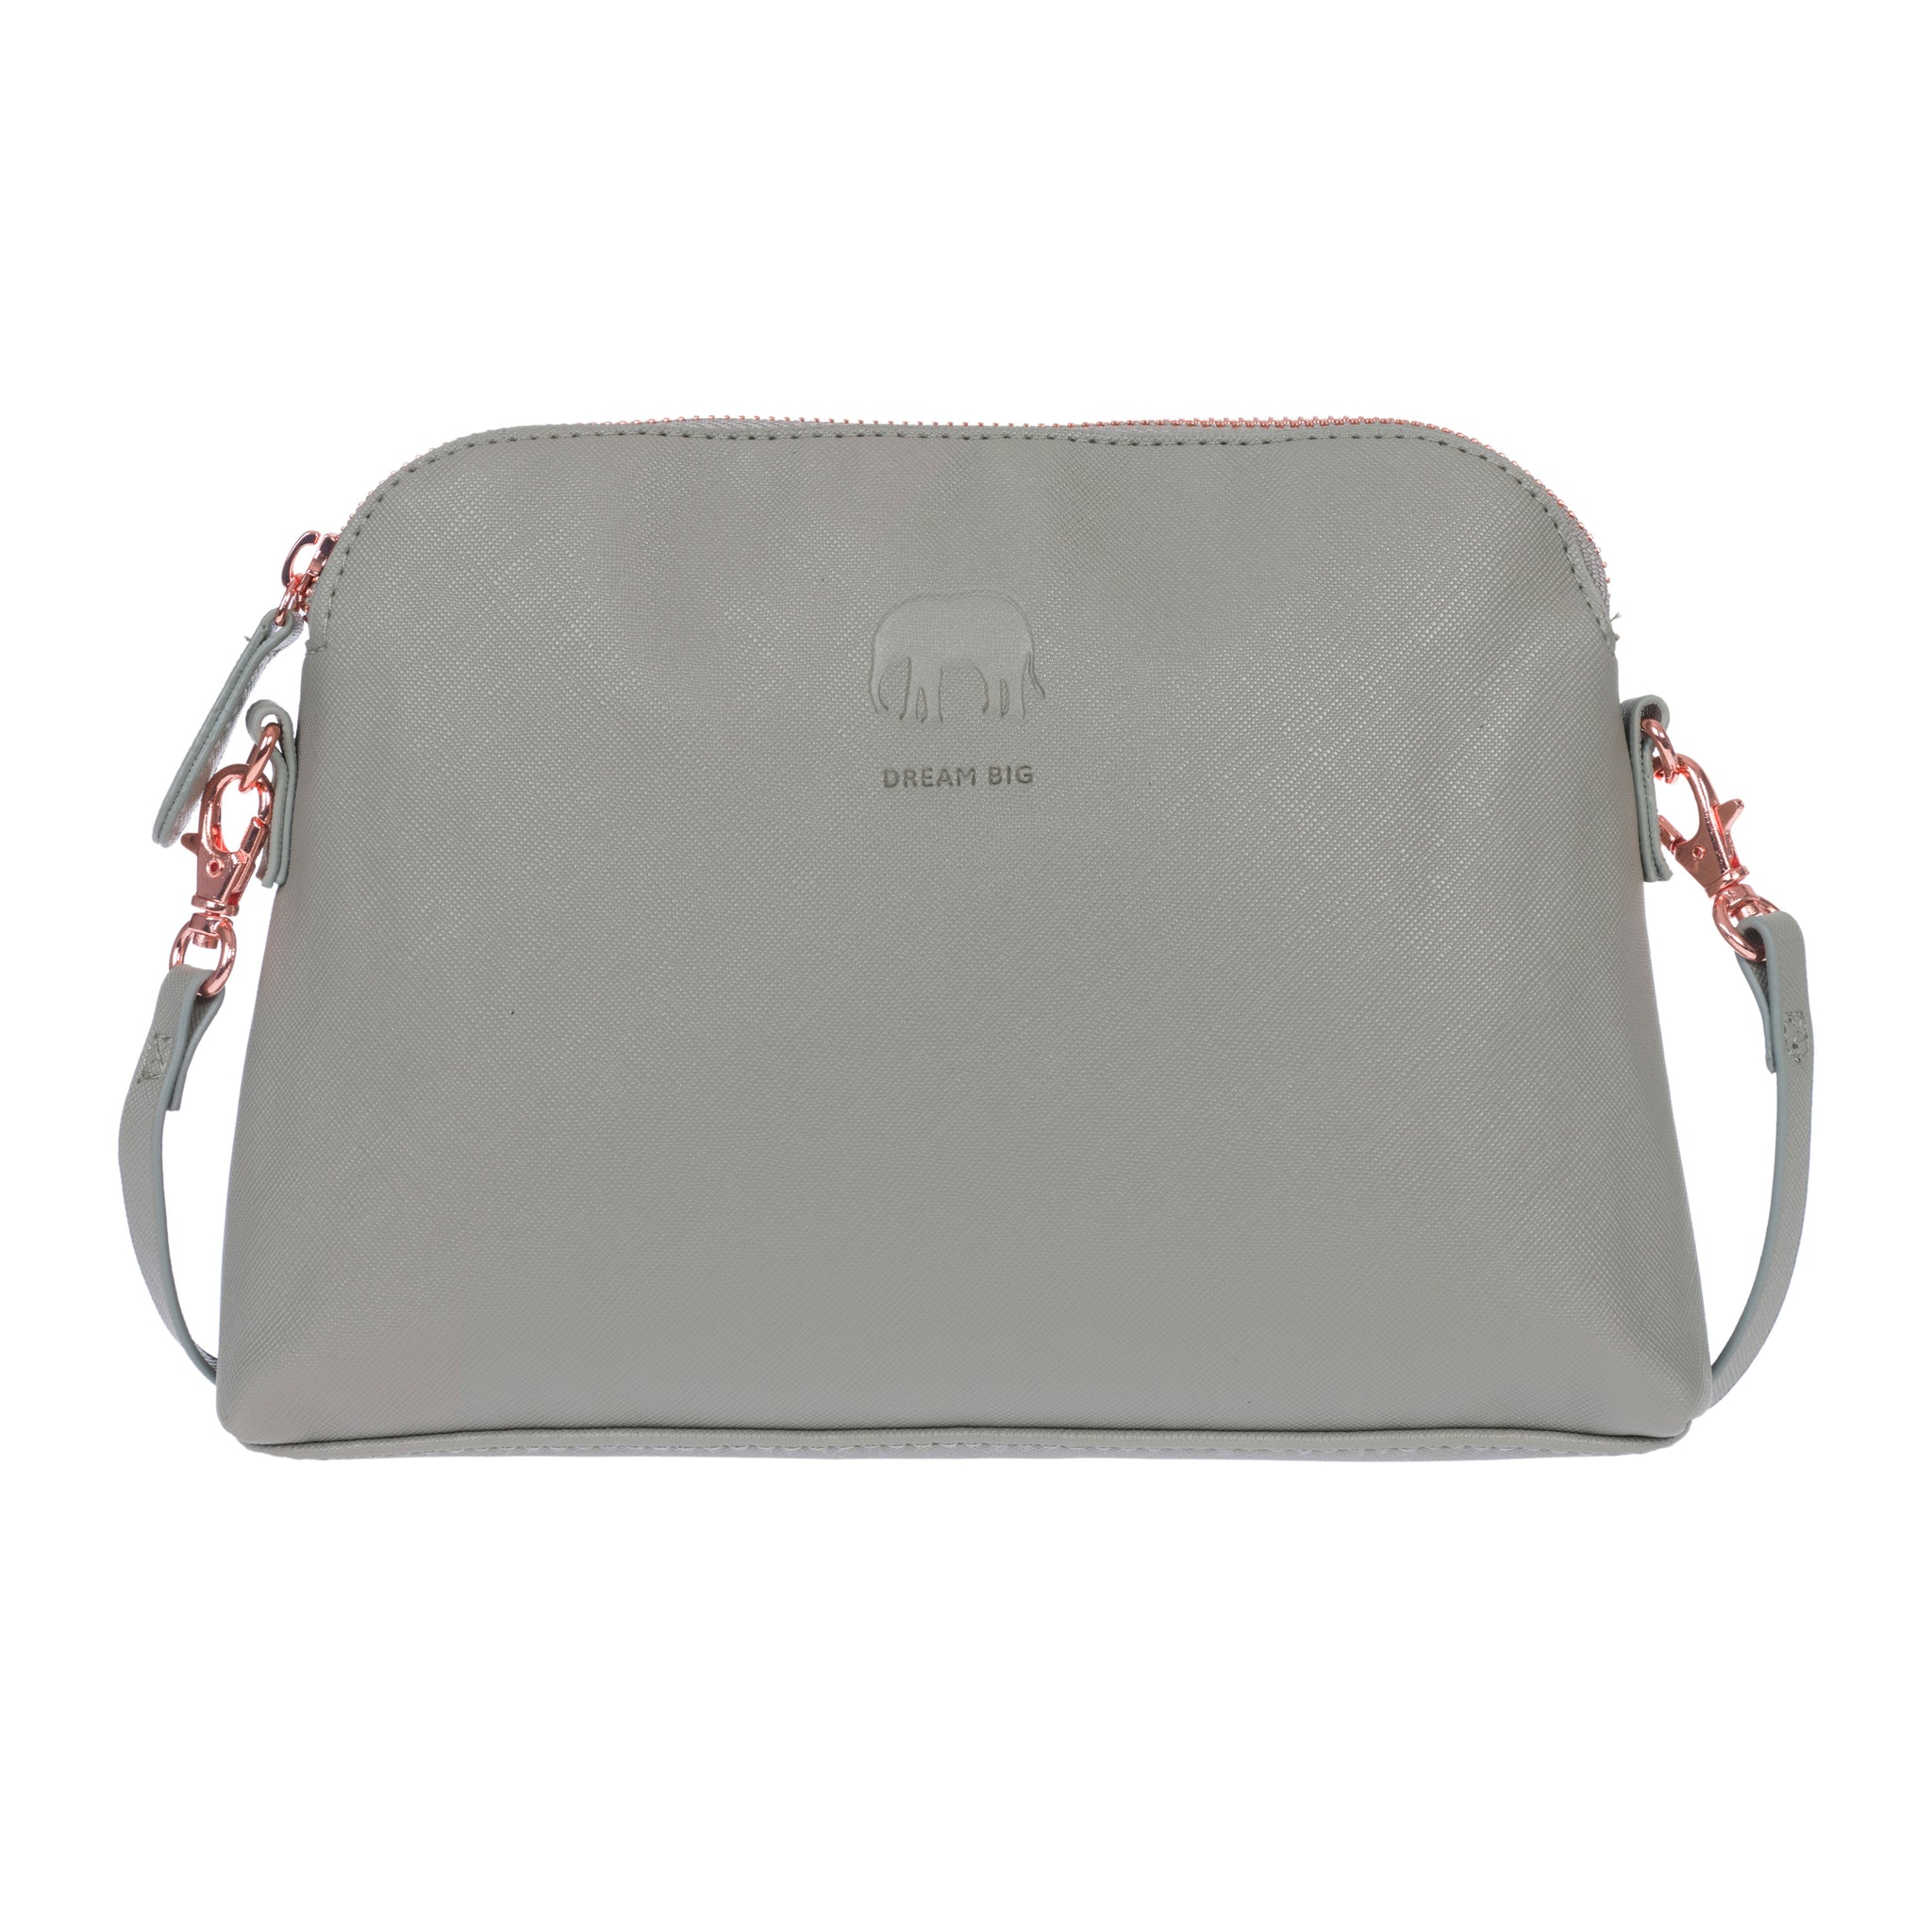 Grey shoulder bag made from faux leather